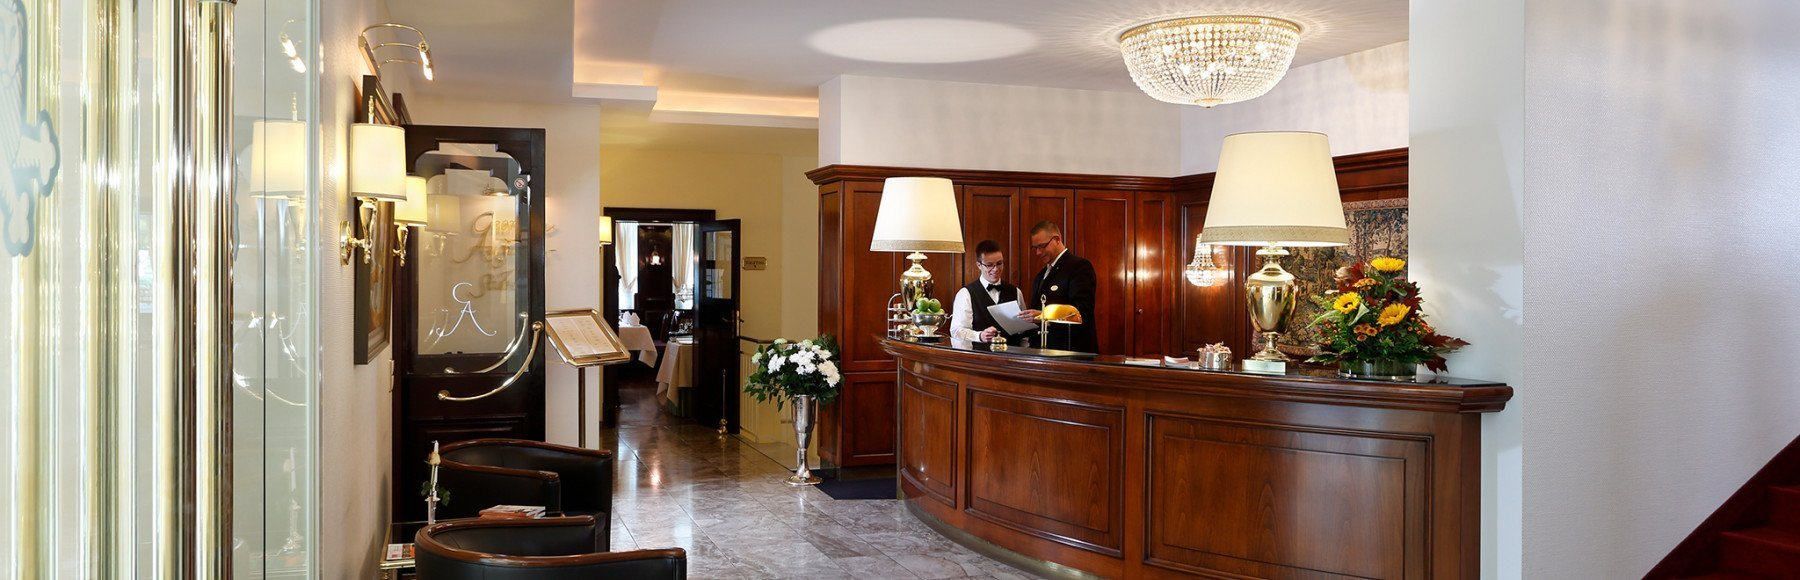 Foyer Hotel Gebhards